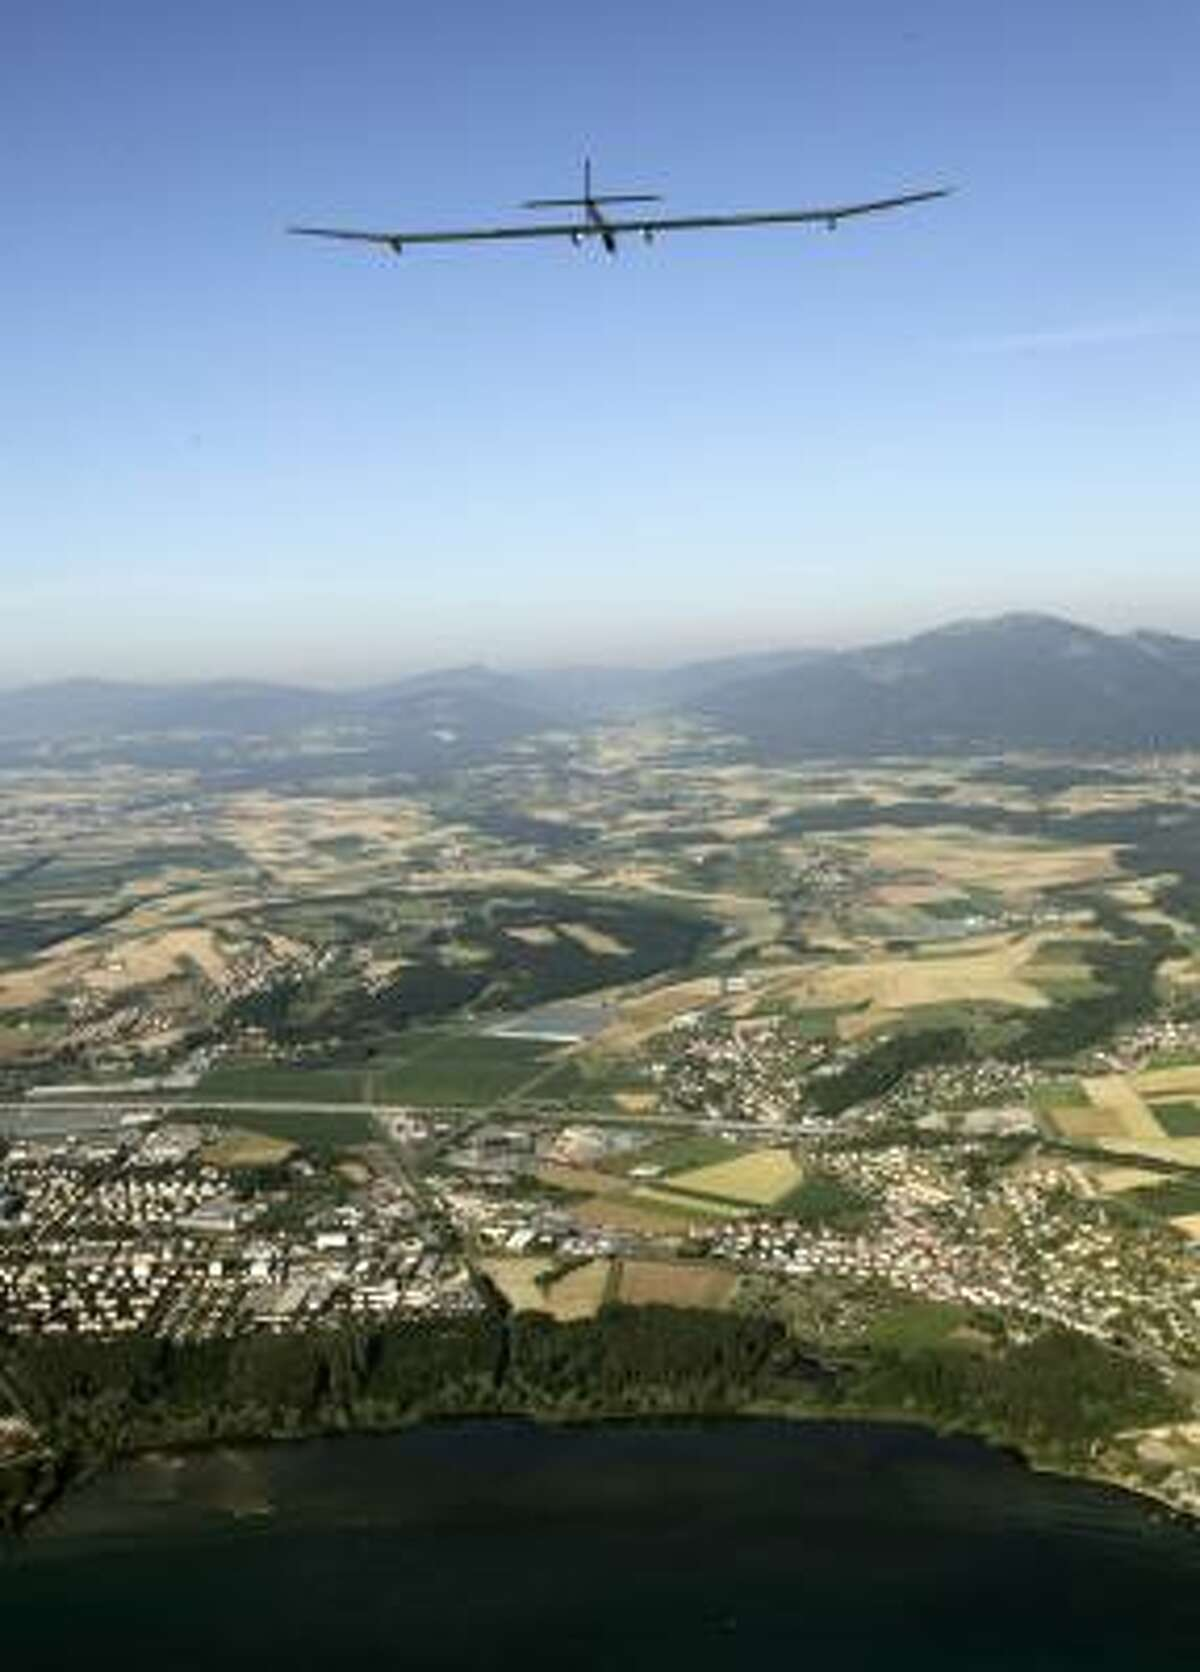 Pilot Andre Borschberg eased the Solar Impulse out of the clear blue morning sky onto the runway at Payerne airfield about 30 miles (50 kilometers) southwest of the Swiss capital Bern at exactly 9 a.m. (0700 GMT; 3 a.m. EDT).